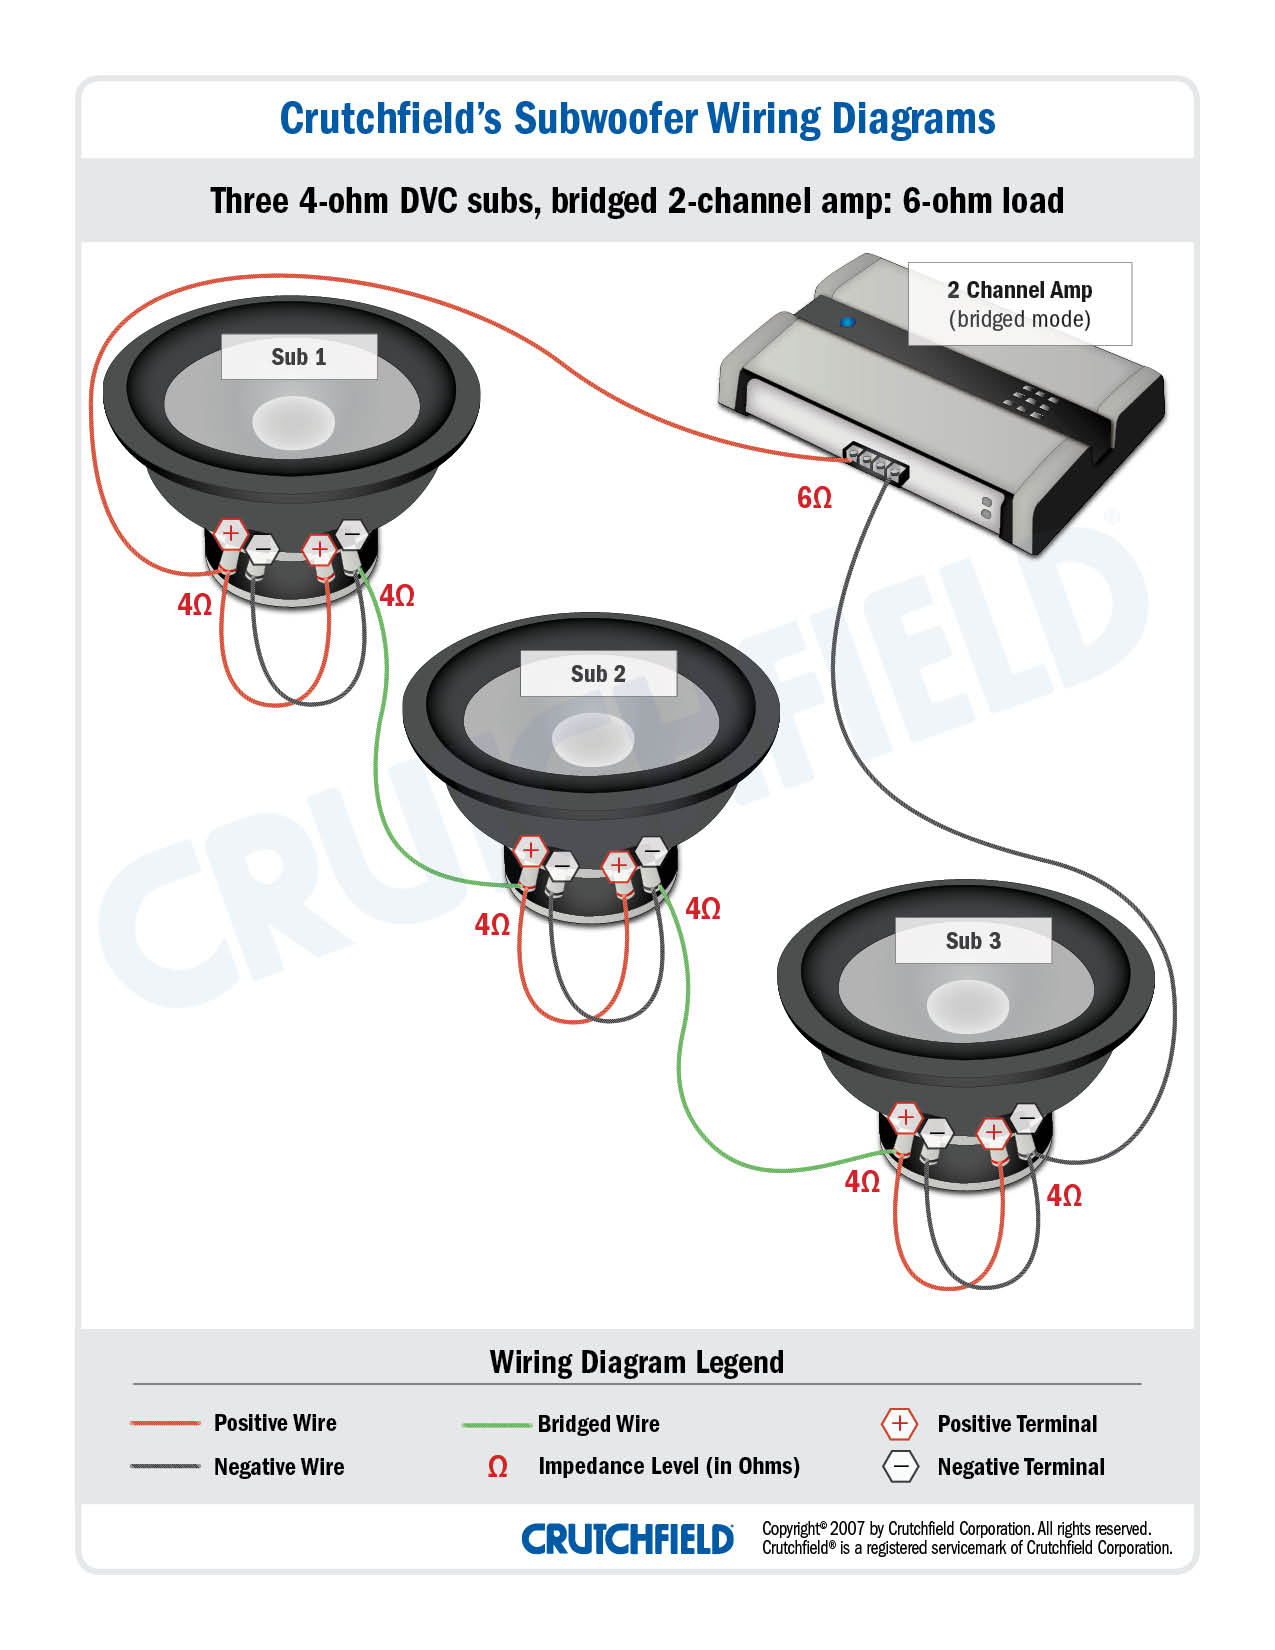 Subwoofer Wiring Diagrams — How To Wire Your Subs - Subwoofer Wiring Diagram Dual 4 Ohm